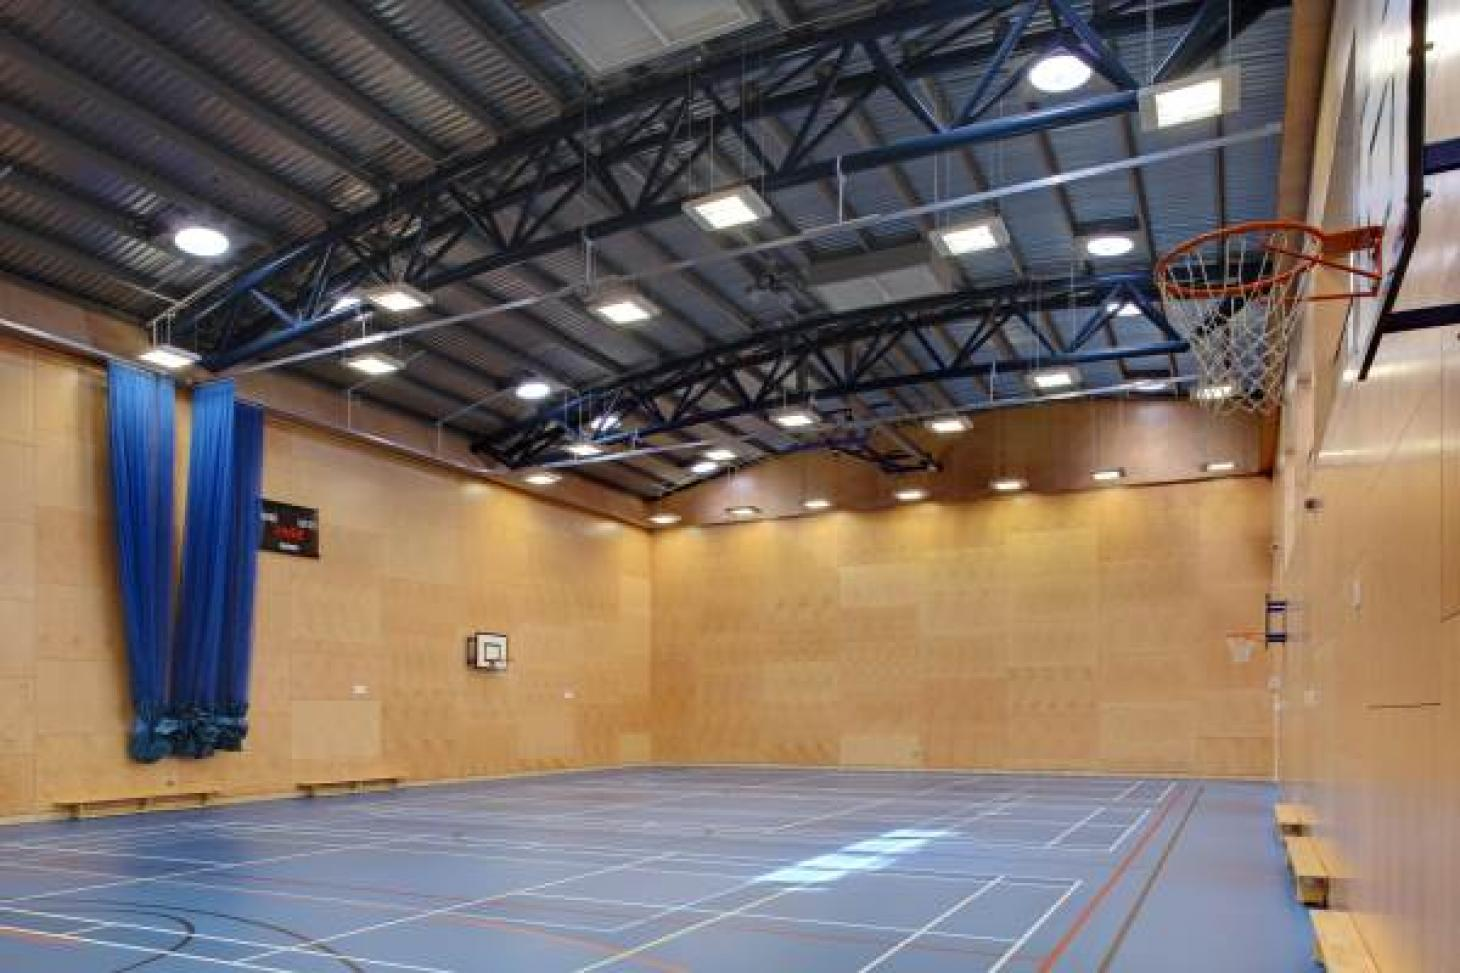 Swiss Cottage Leisure Centre 5 a side | Indoor football pitch